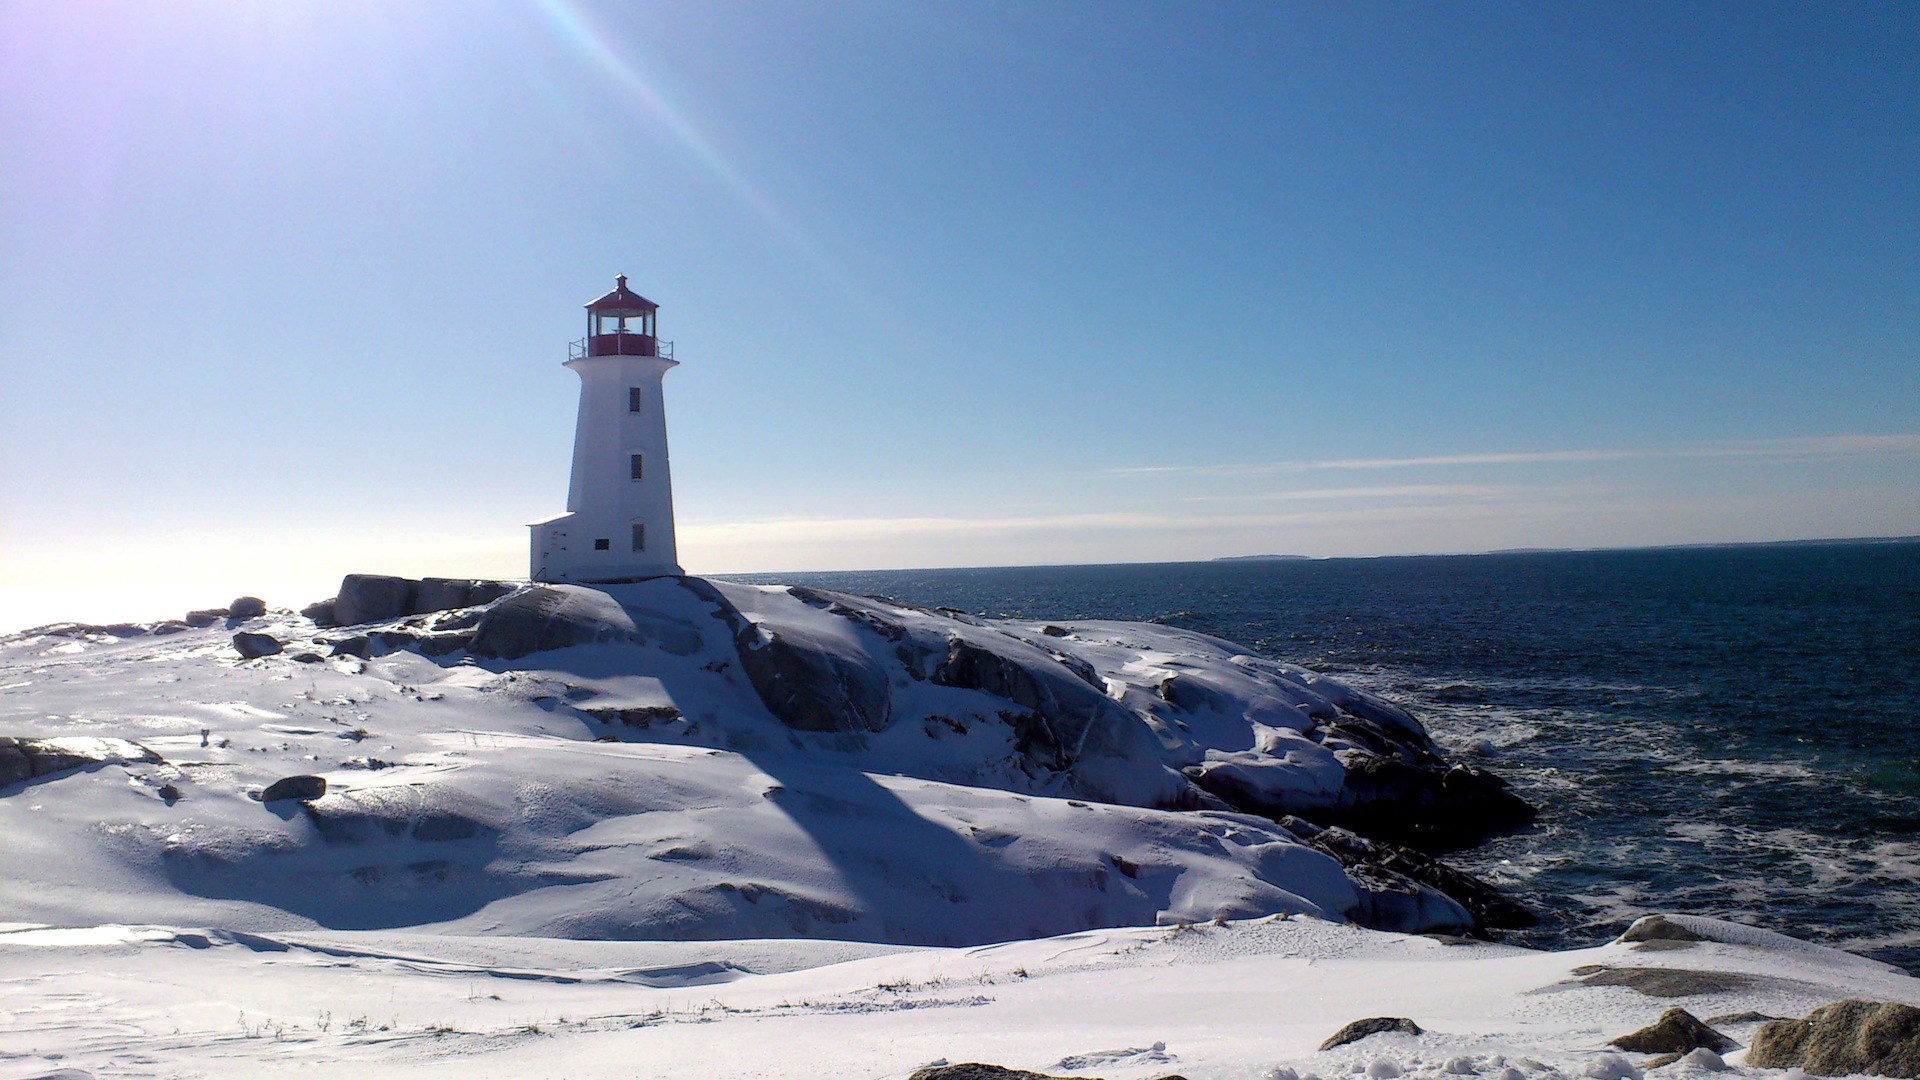 4k Fall Michigan Wallpaper Winter Time On The Sea Lighthouse In The Sun